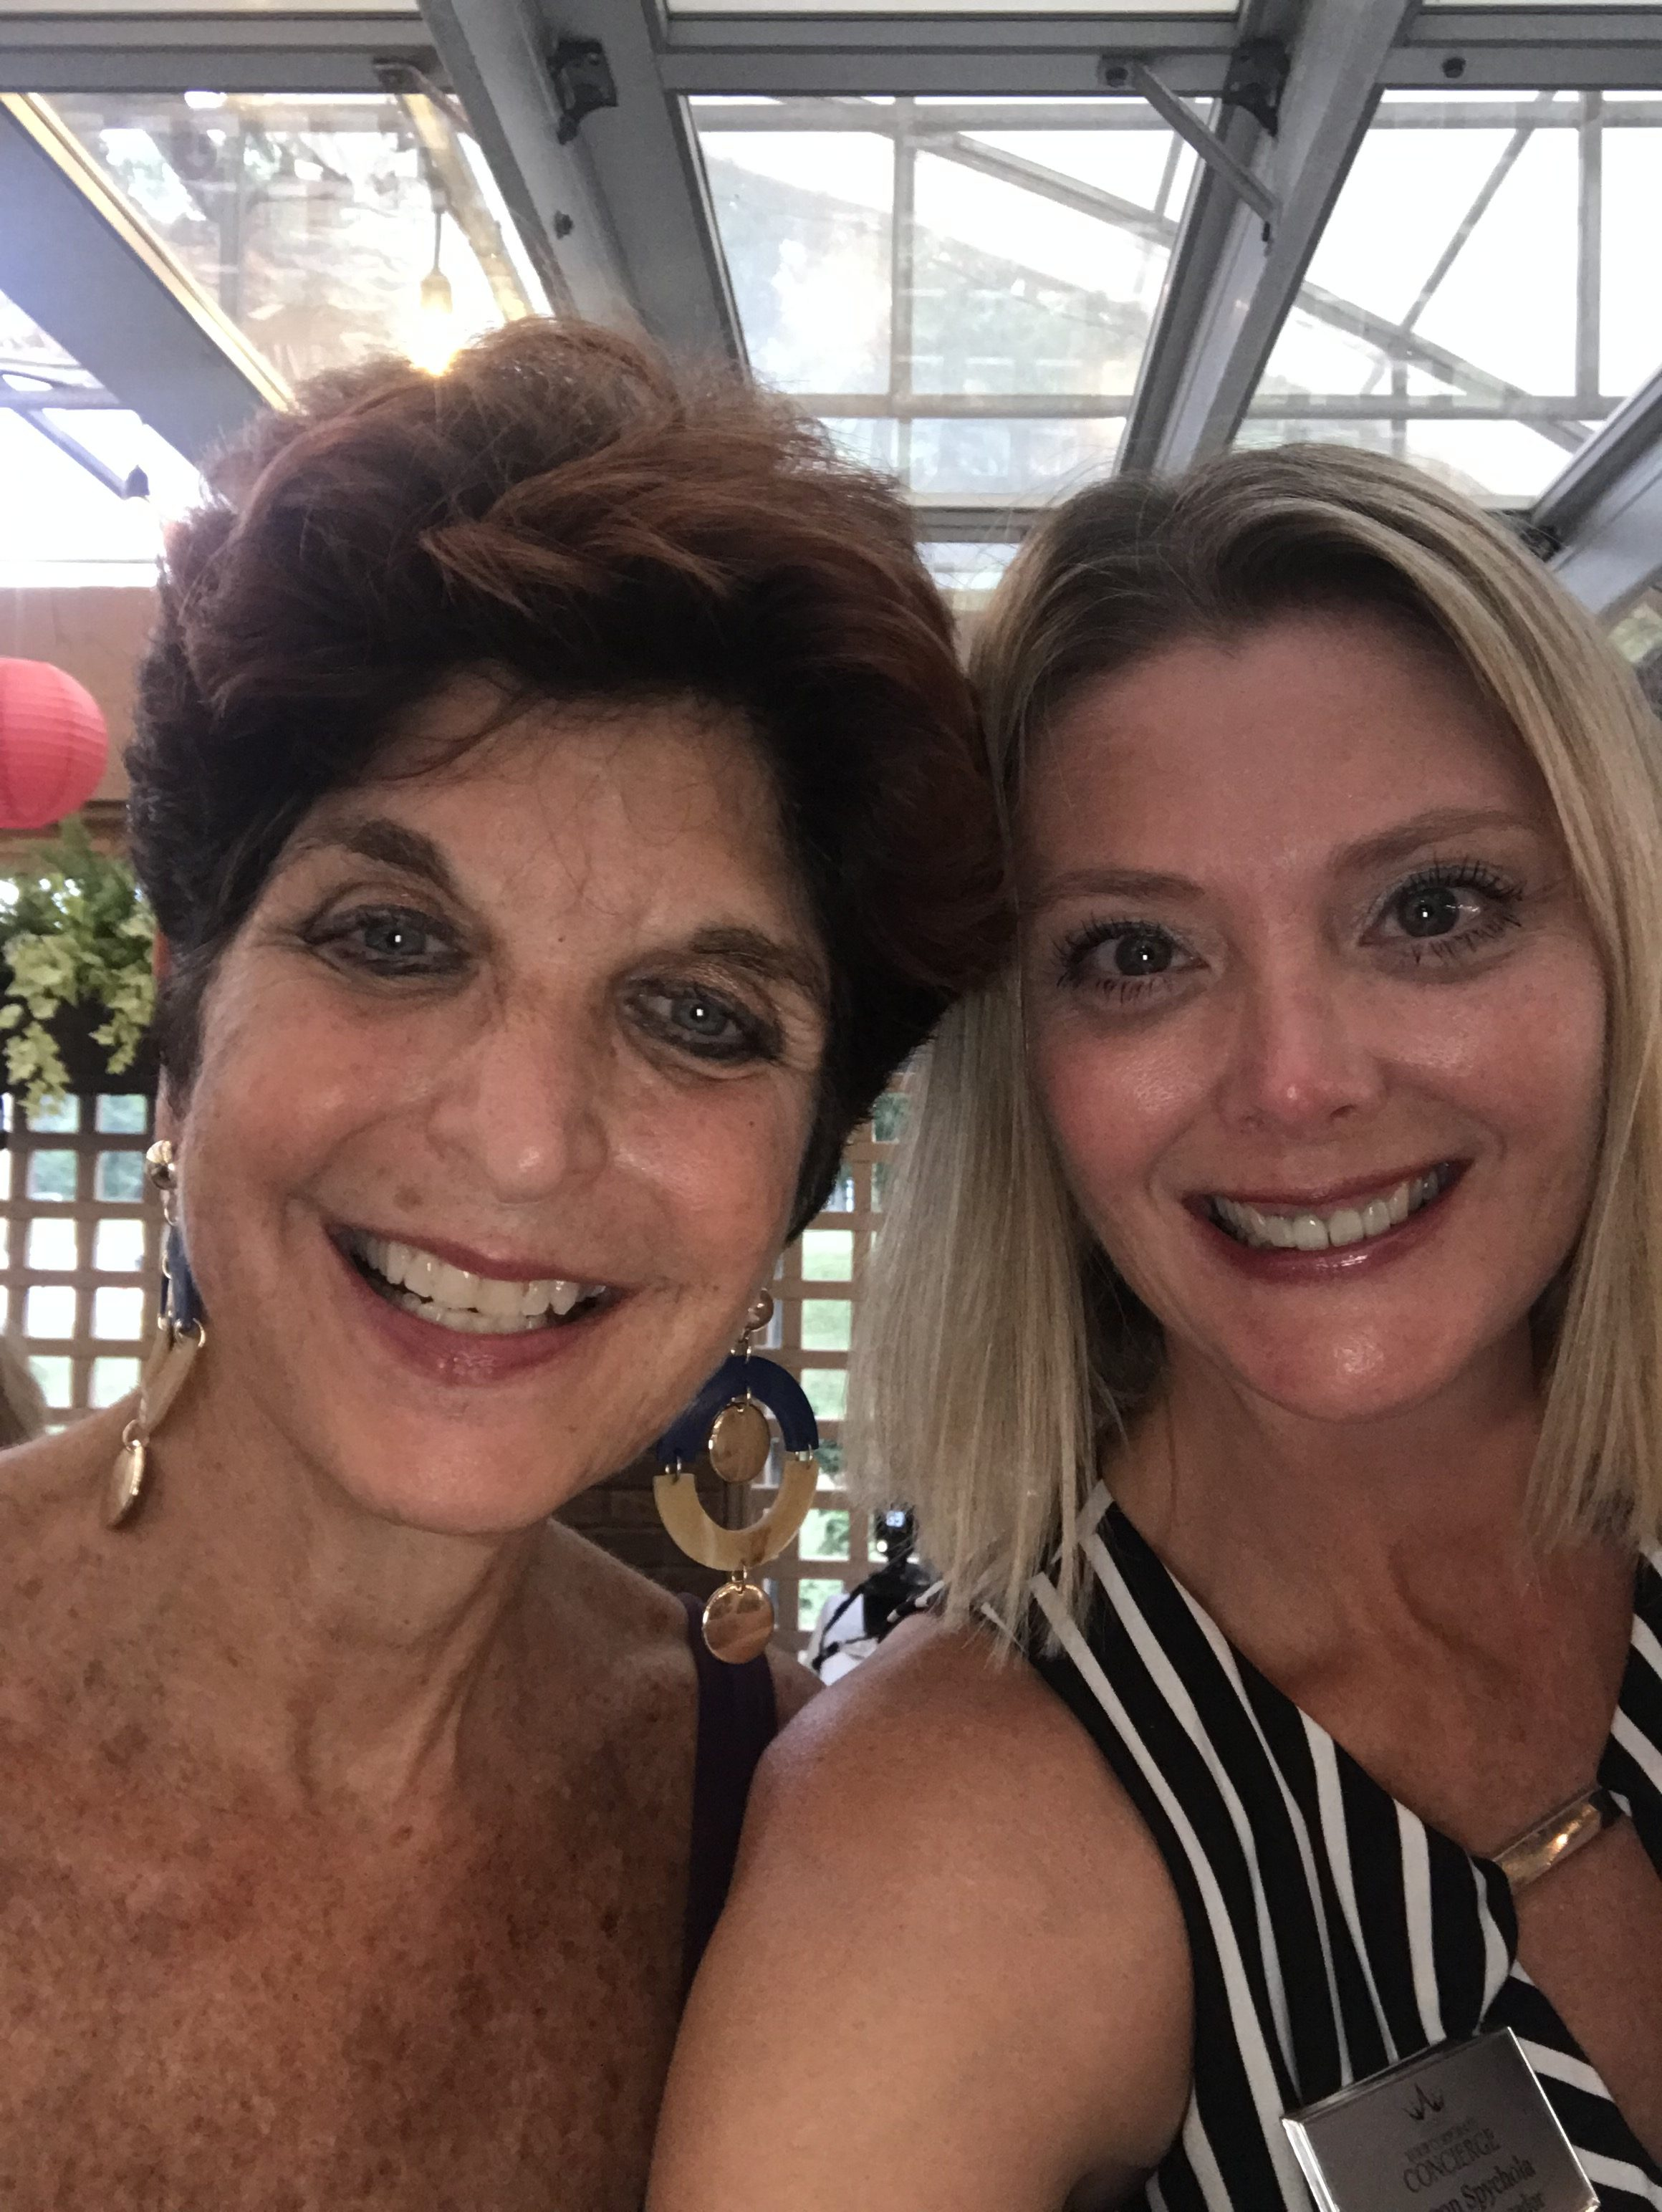 Attending the 2019 NAWBO Summer Soiree with some amazing female entrepreneurs.